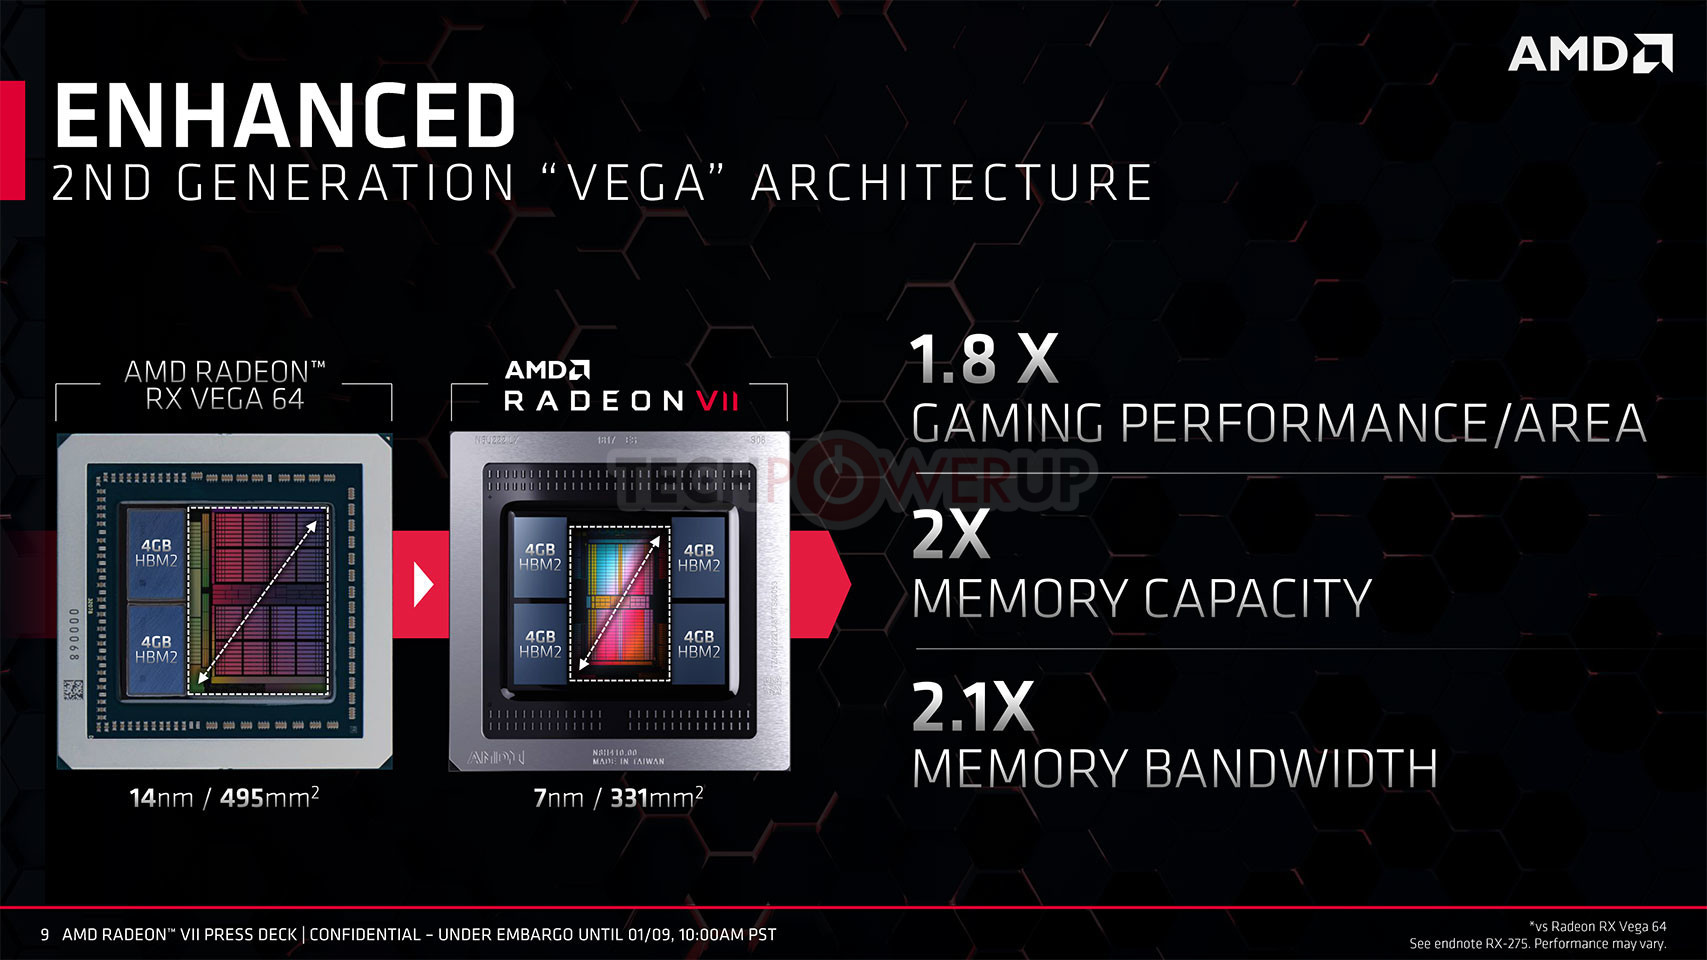 AMD Radeon VII Detailed Some More: Die-size, Secret-sauce, Ray